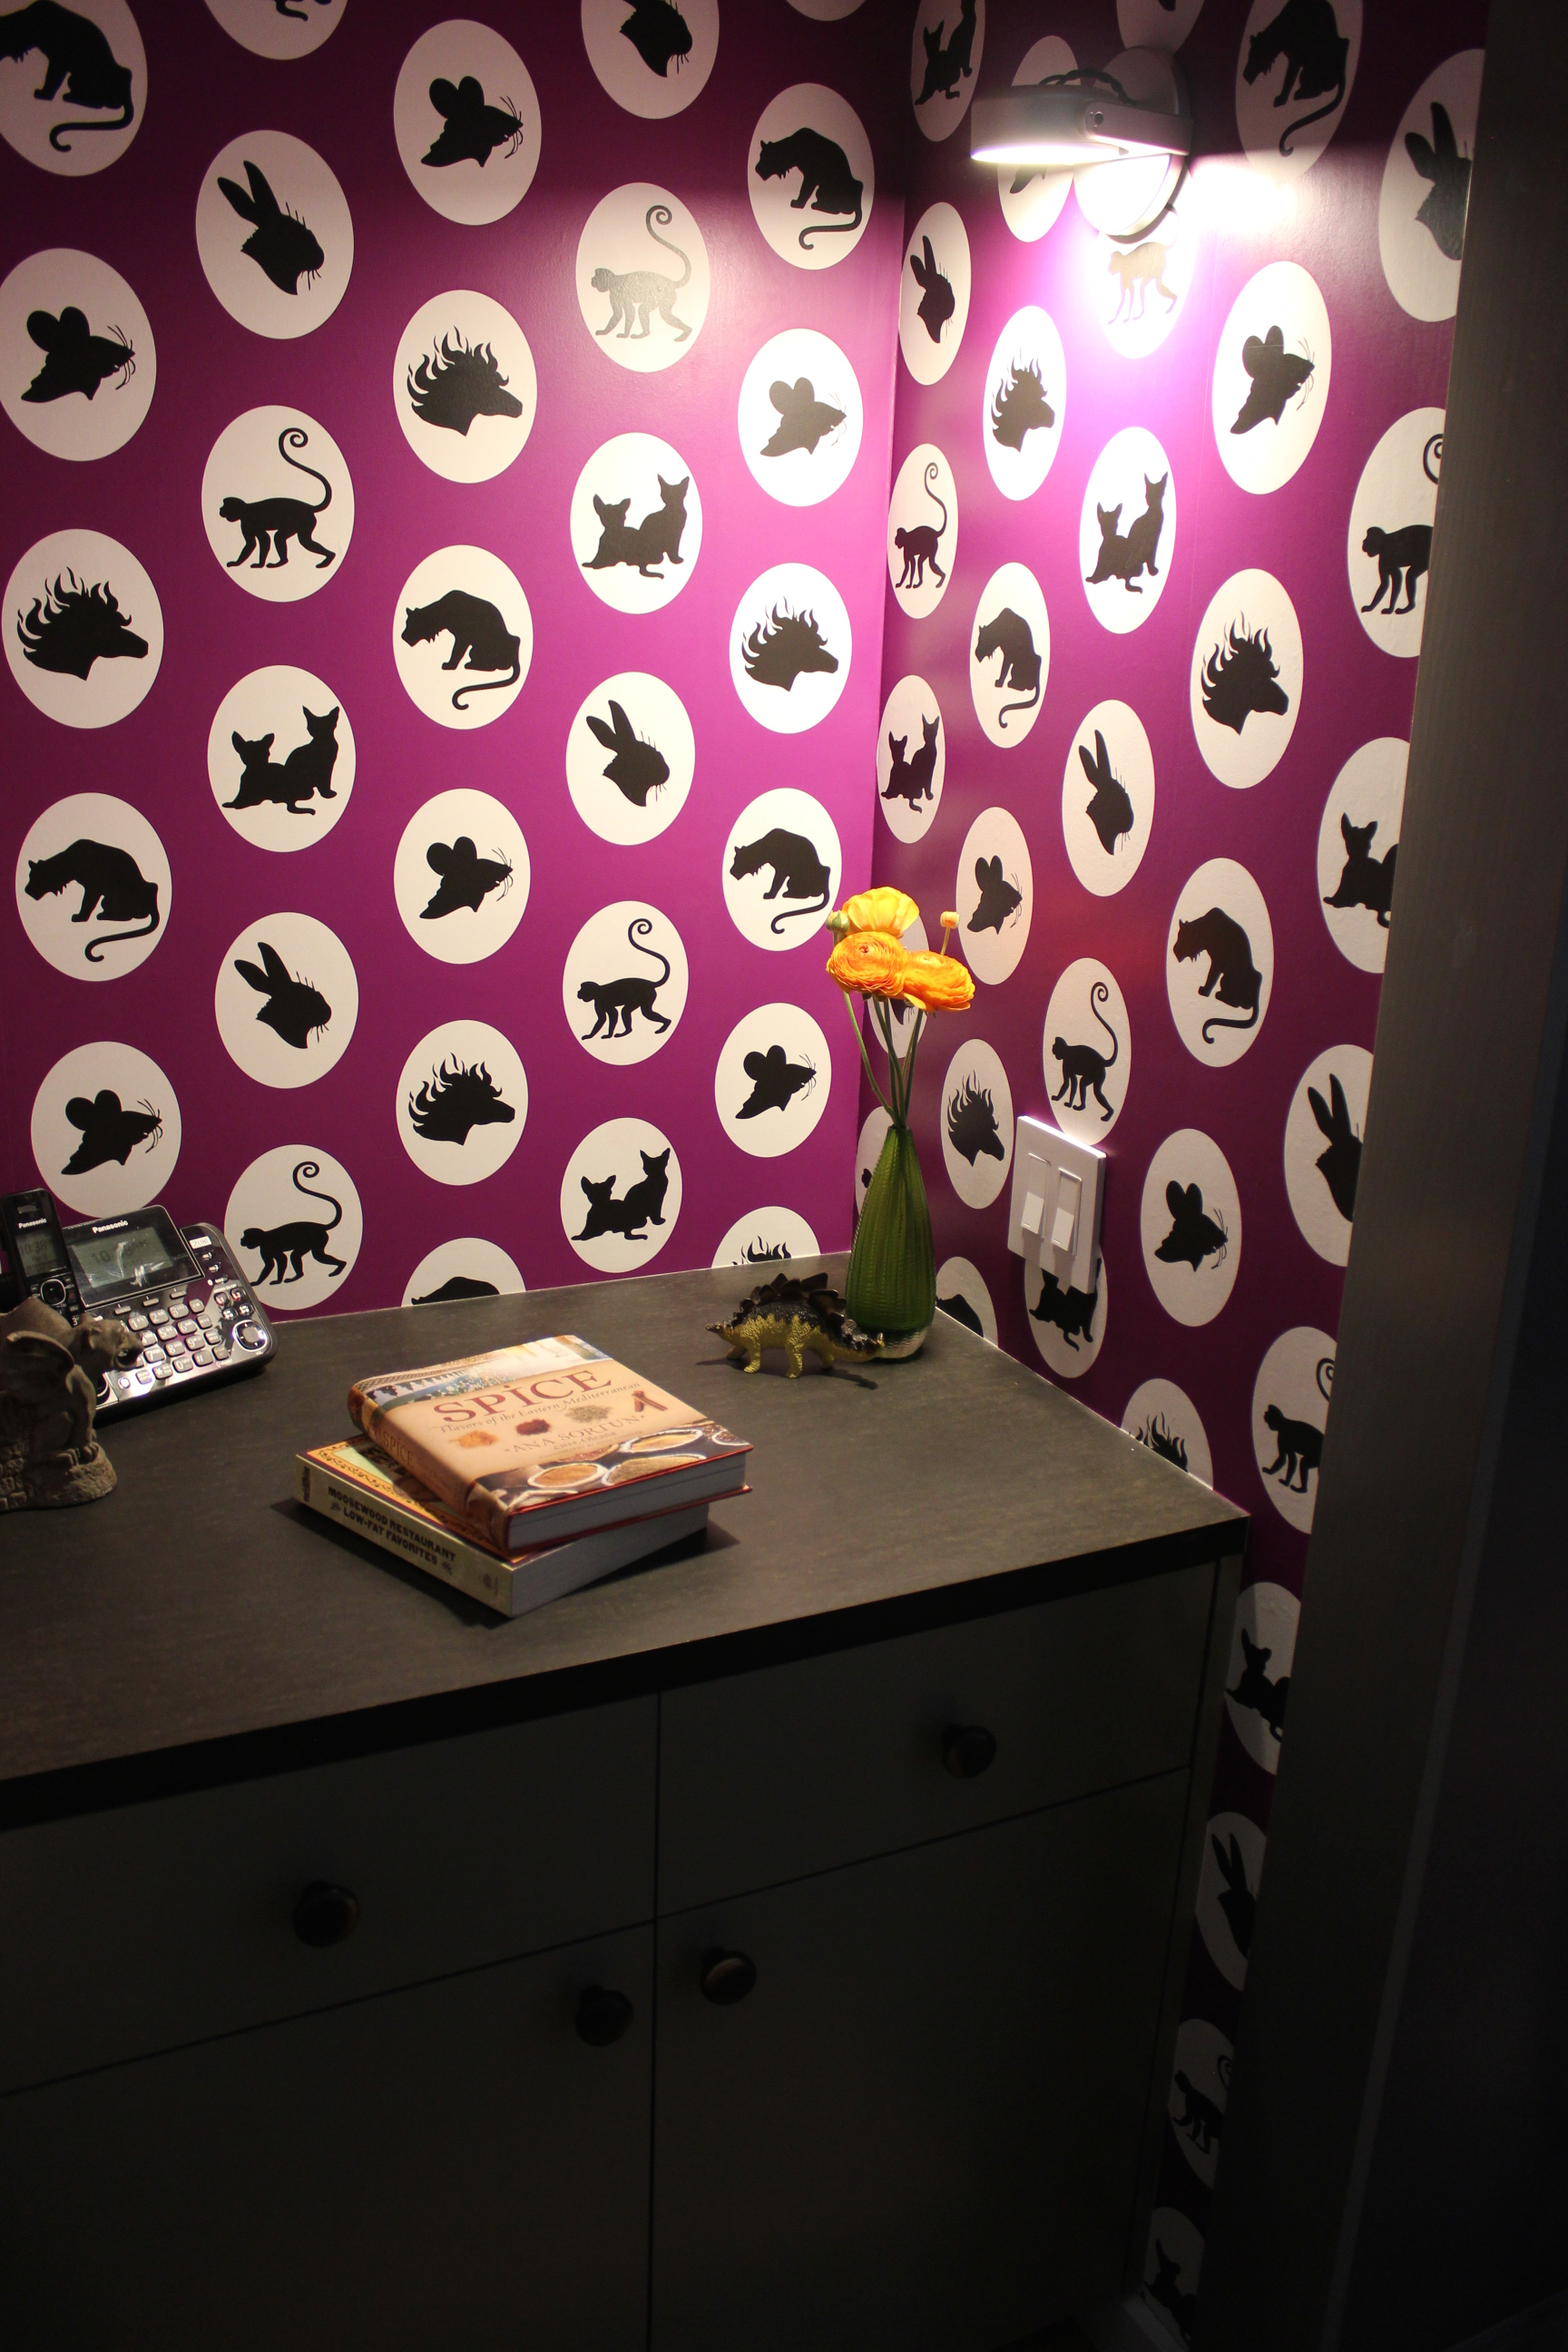 Bespoke wallpaper by Karen Blankenship.